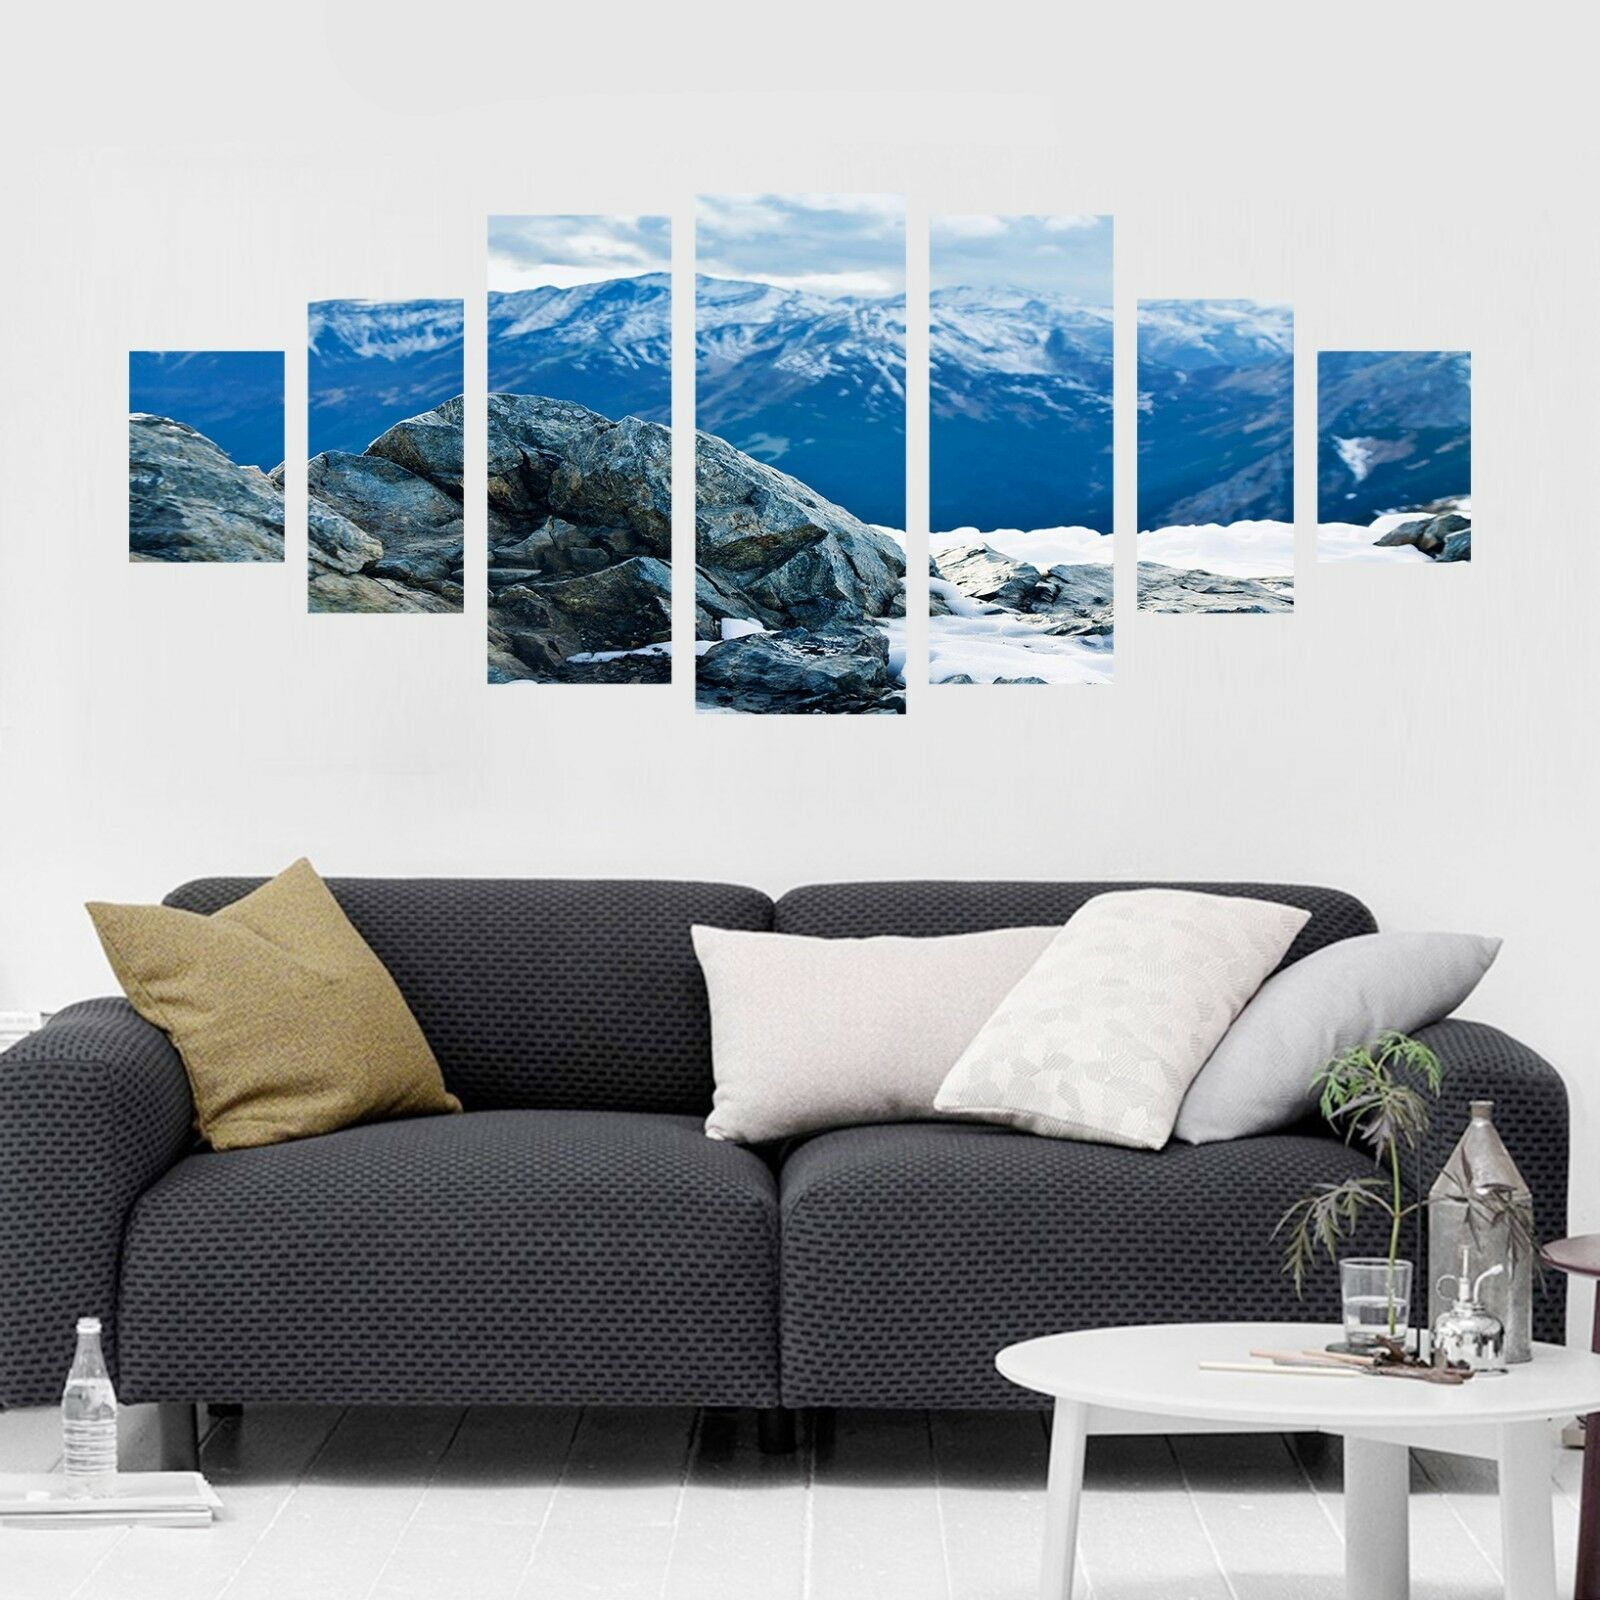 3D Snow Mountain 676 Unframed Print Wall Paper Decal Wall Deco Indoor AJ Wall